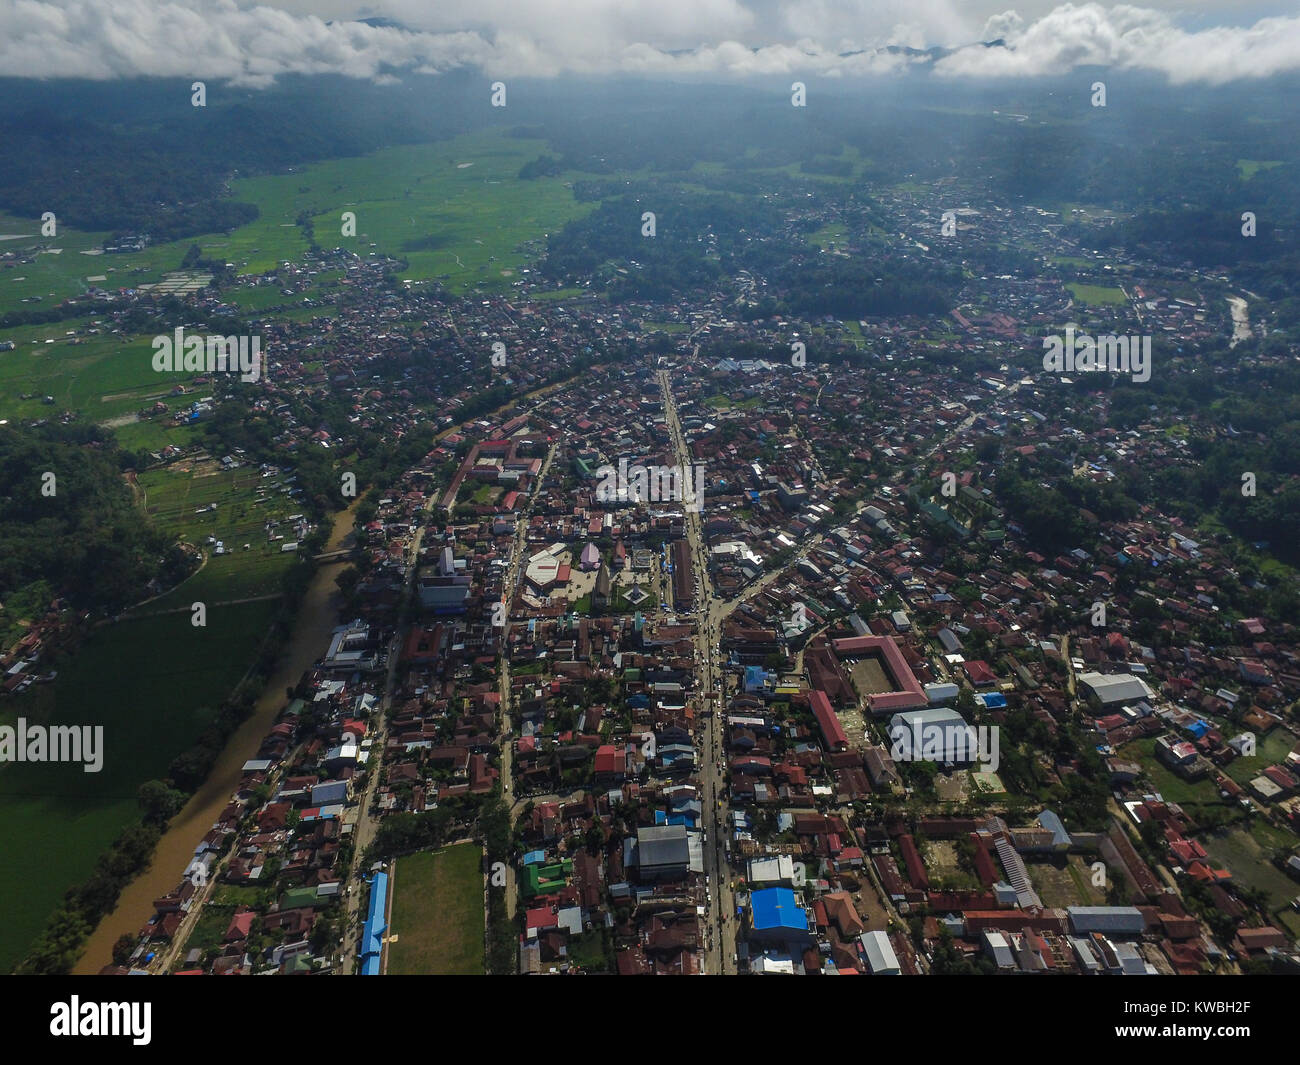 City of Rantepao from aerial drone point of view. - Stock Image